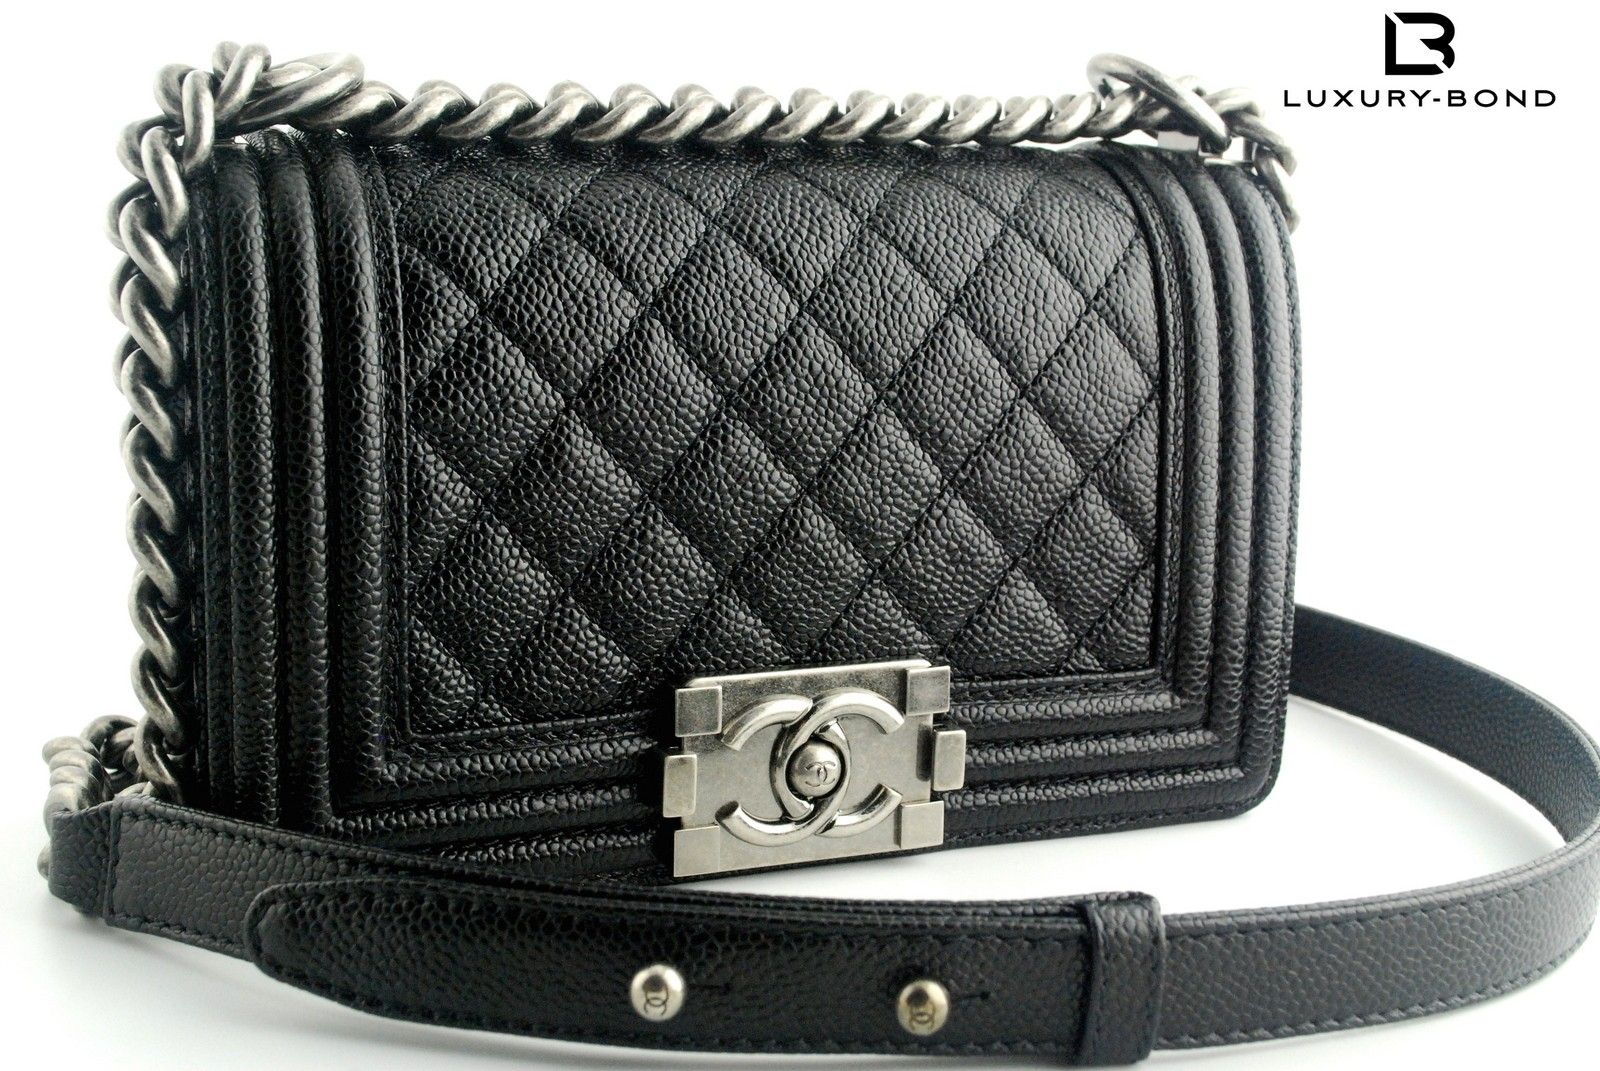 a4cf82df6d6b Chanel Le Boy CAVIAR Leather Small Size Black Color Flap Bag 2014 Fall  (14B) Collection